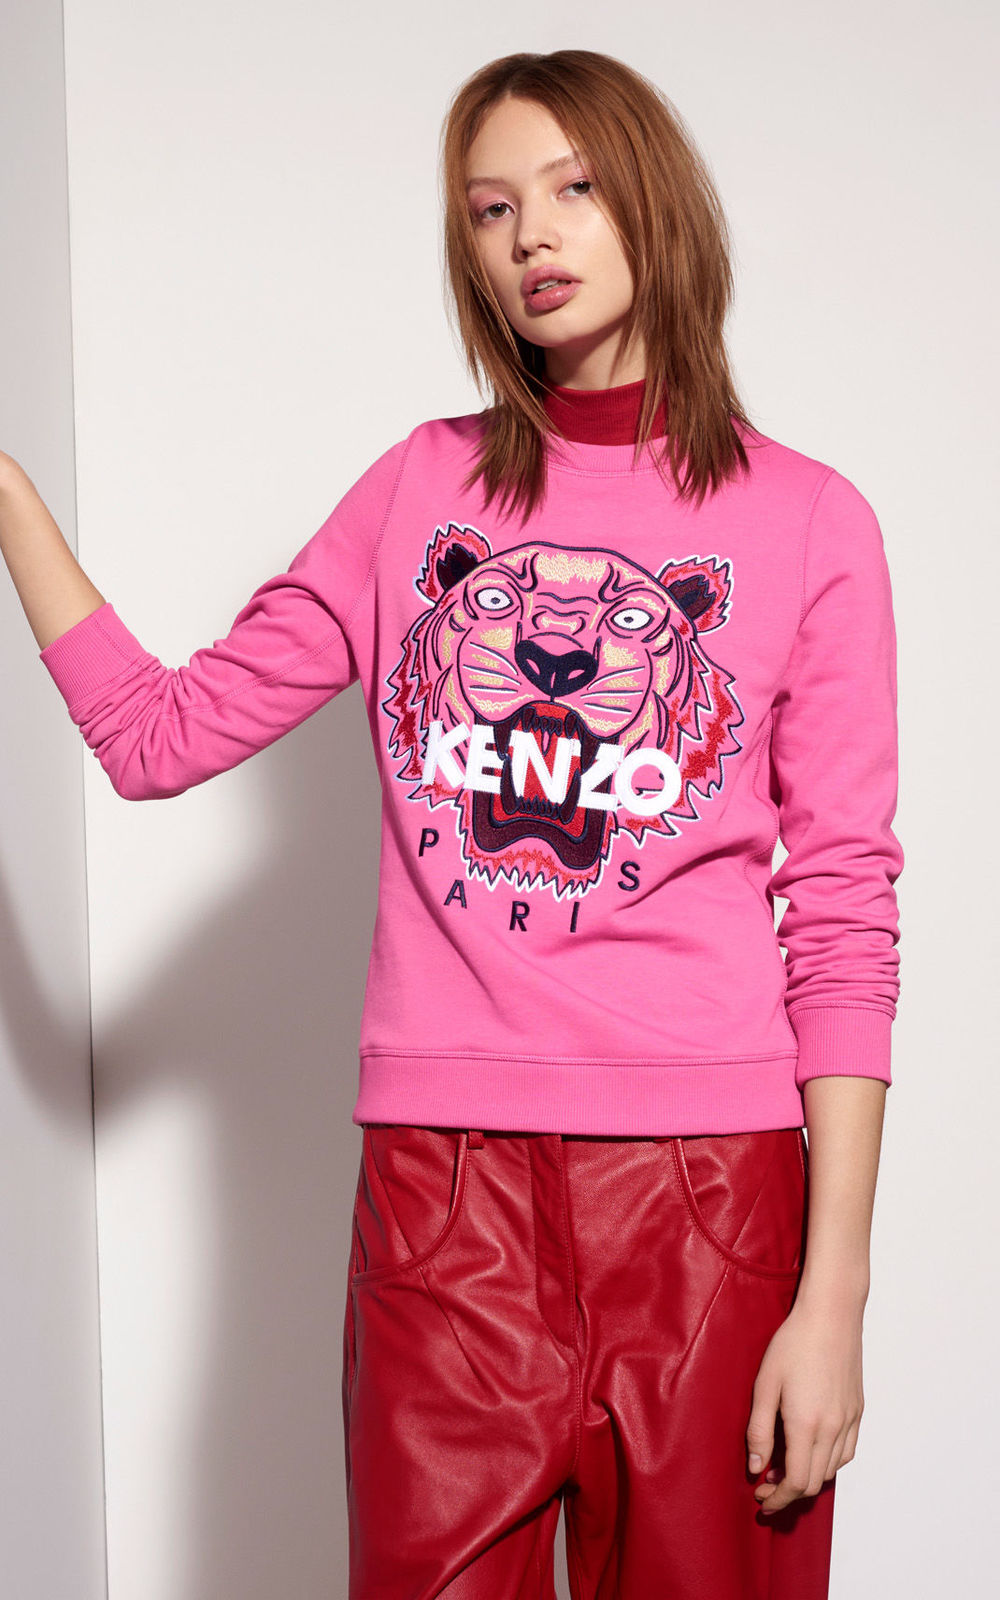 Tokyo Tigers Collection, courtesy kenzo.com